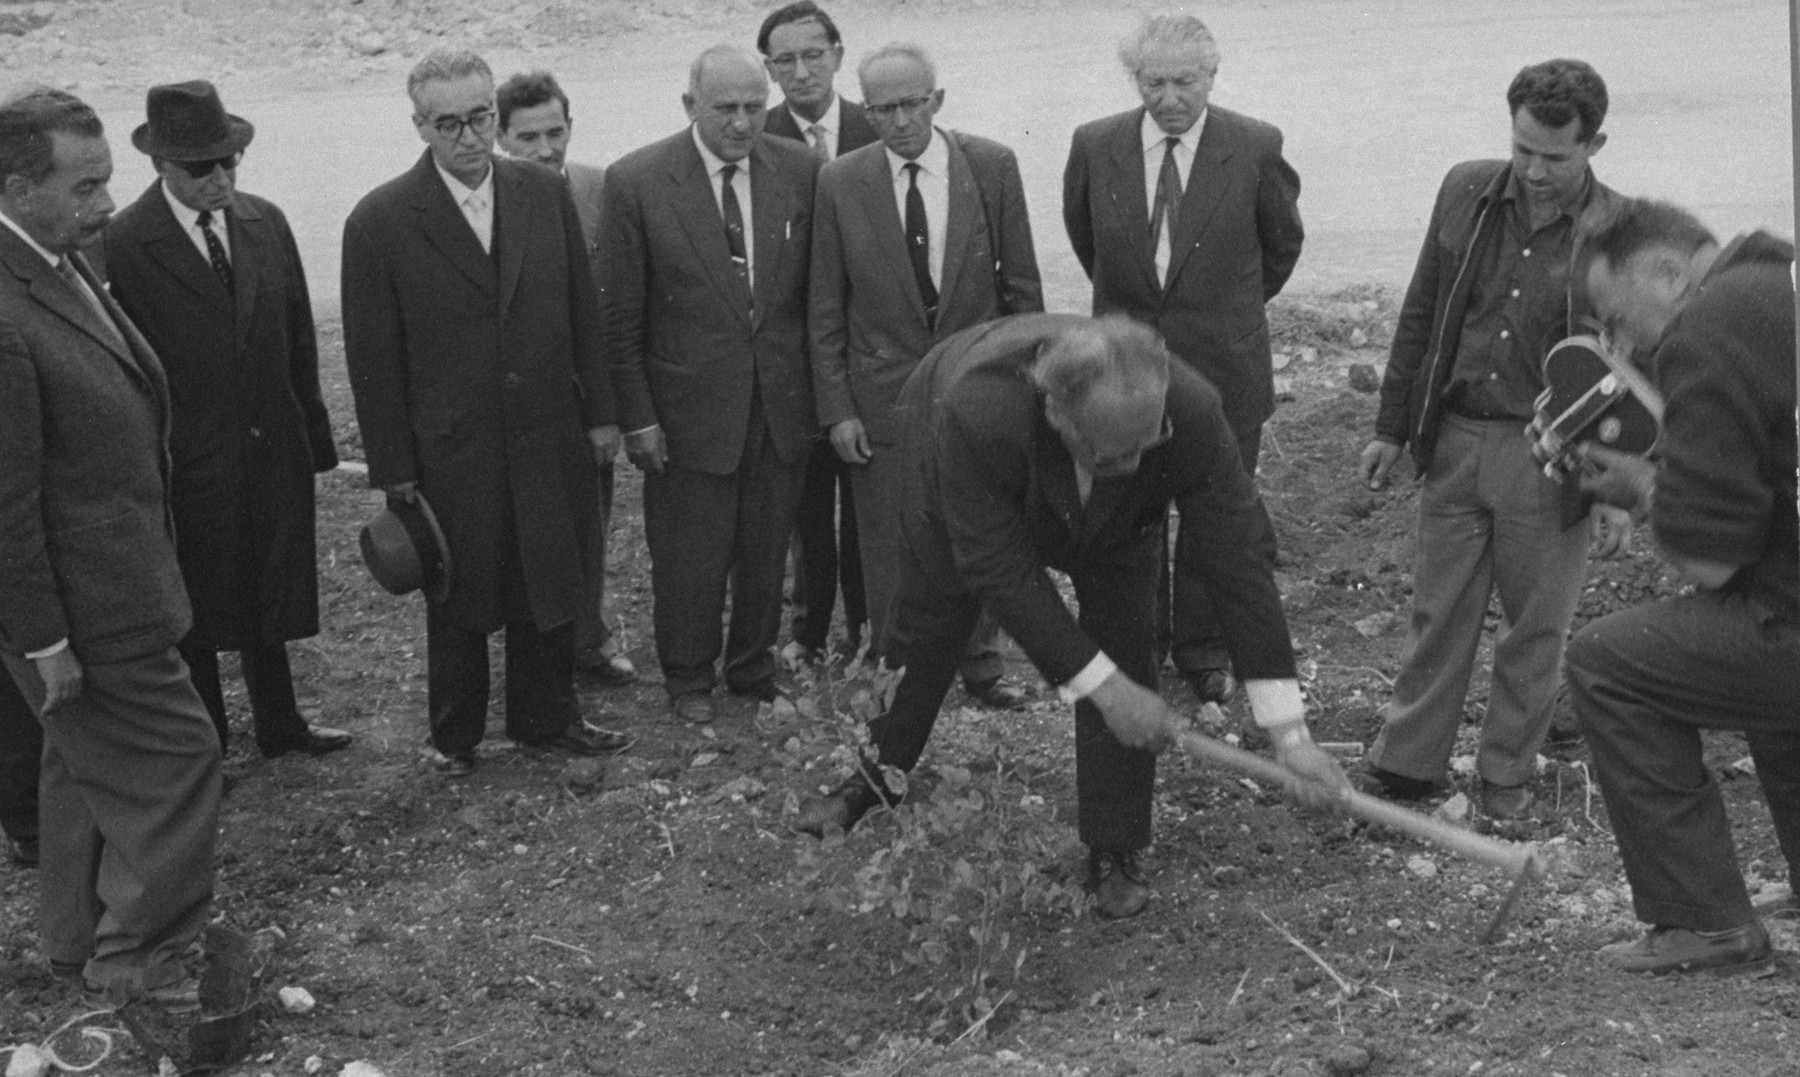 Oskar Schindler plants a tree on the Avenue of the Righteous Among the Nations at Yad Vashem.